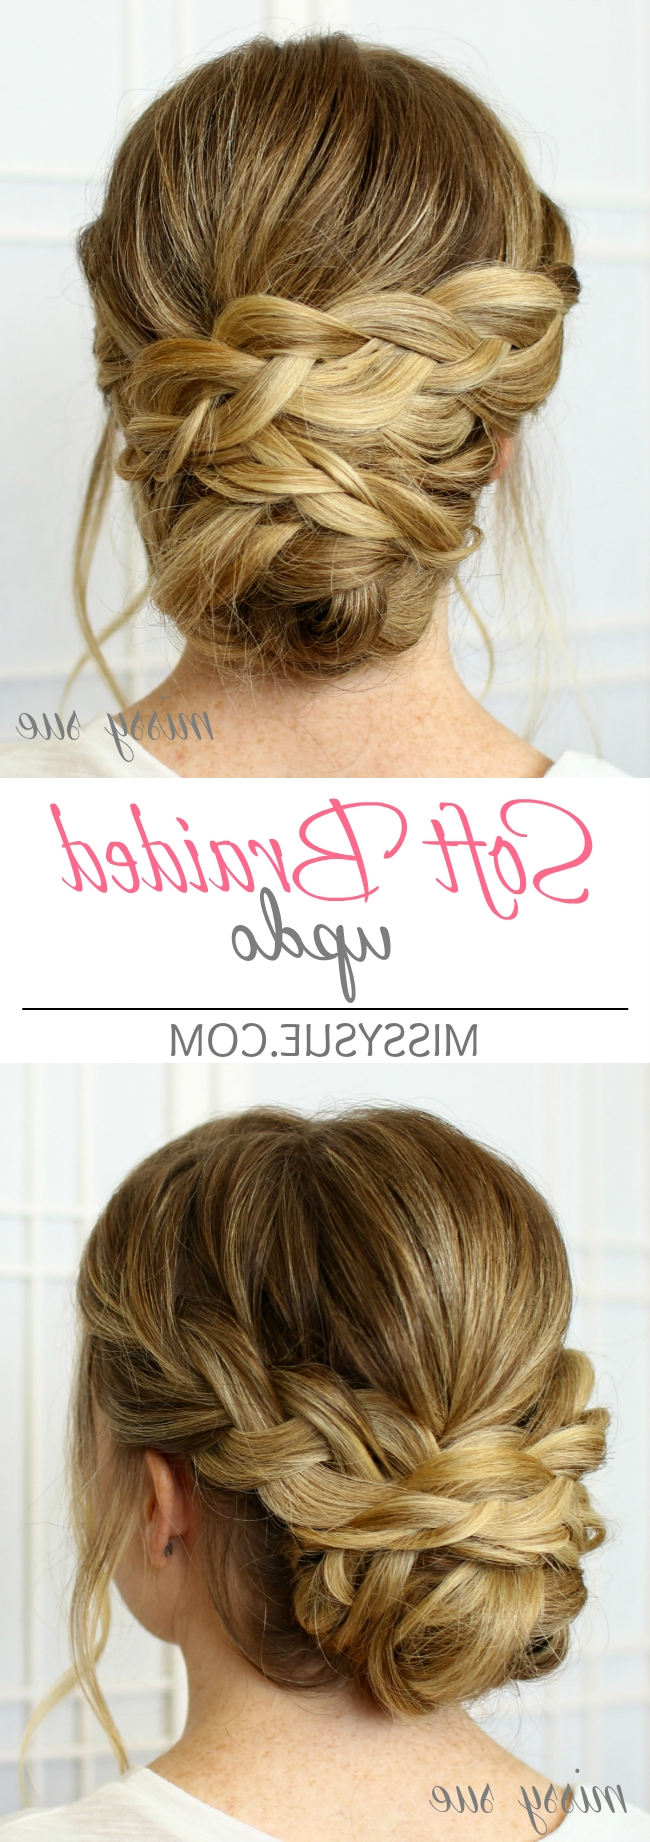 Soft Braided Updo Pertaining To Latest Unique Braided Up Do Hairstyles (View 7 of 15)